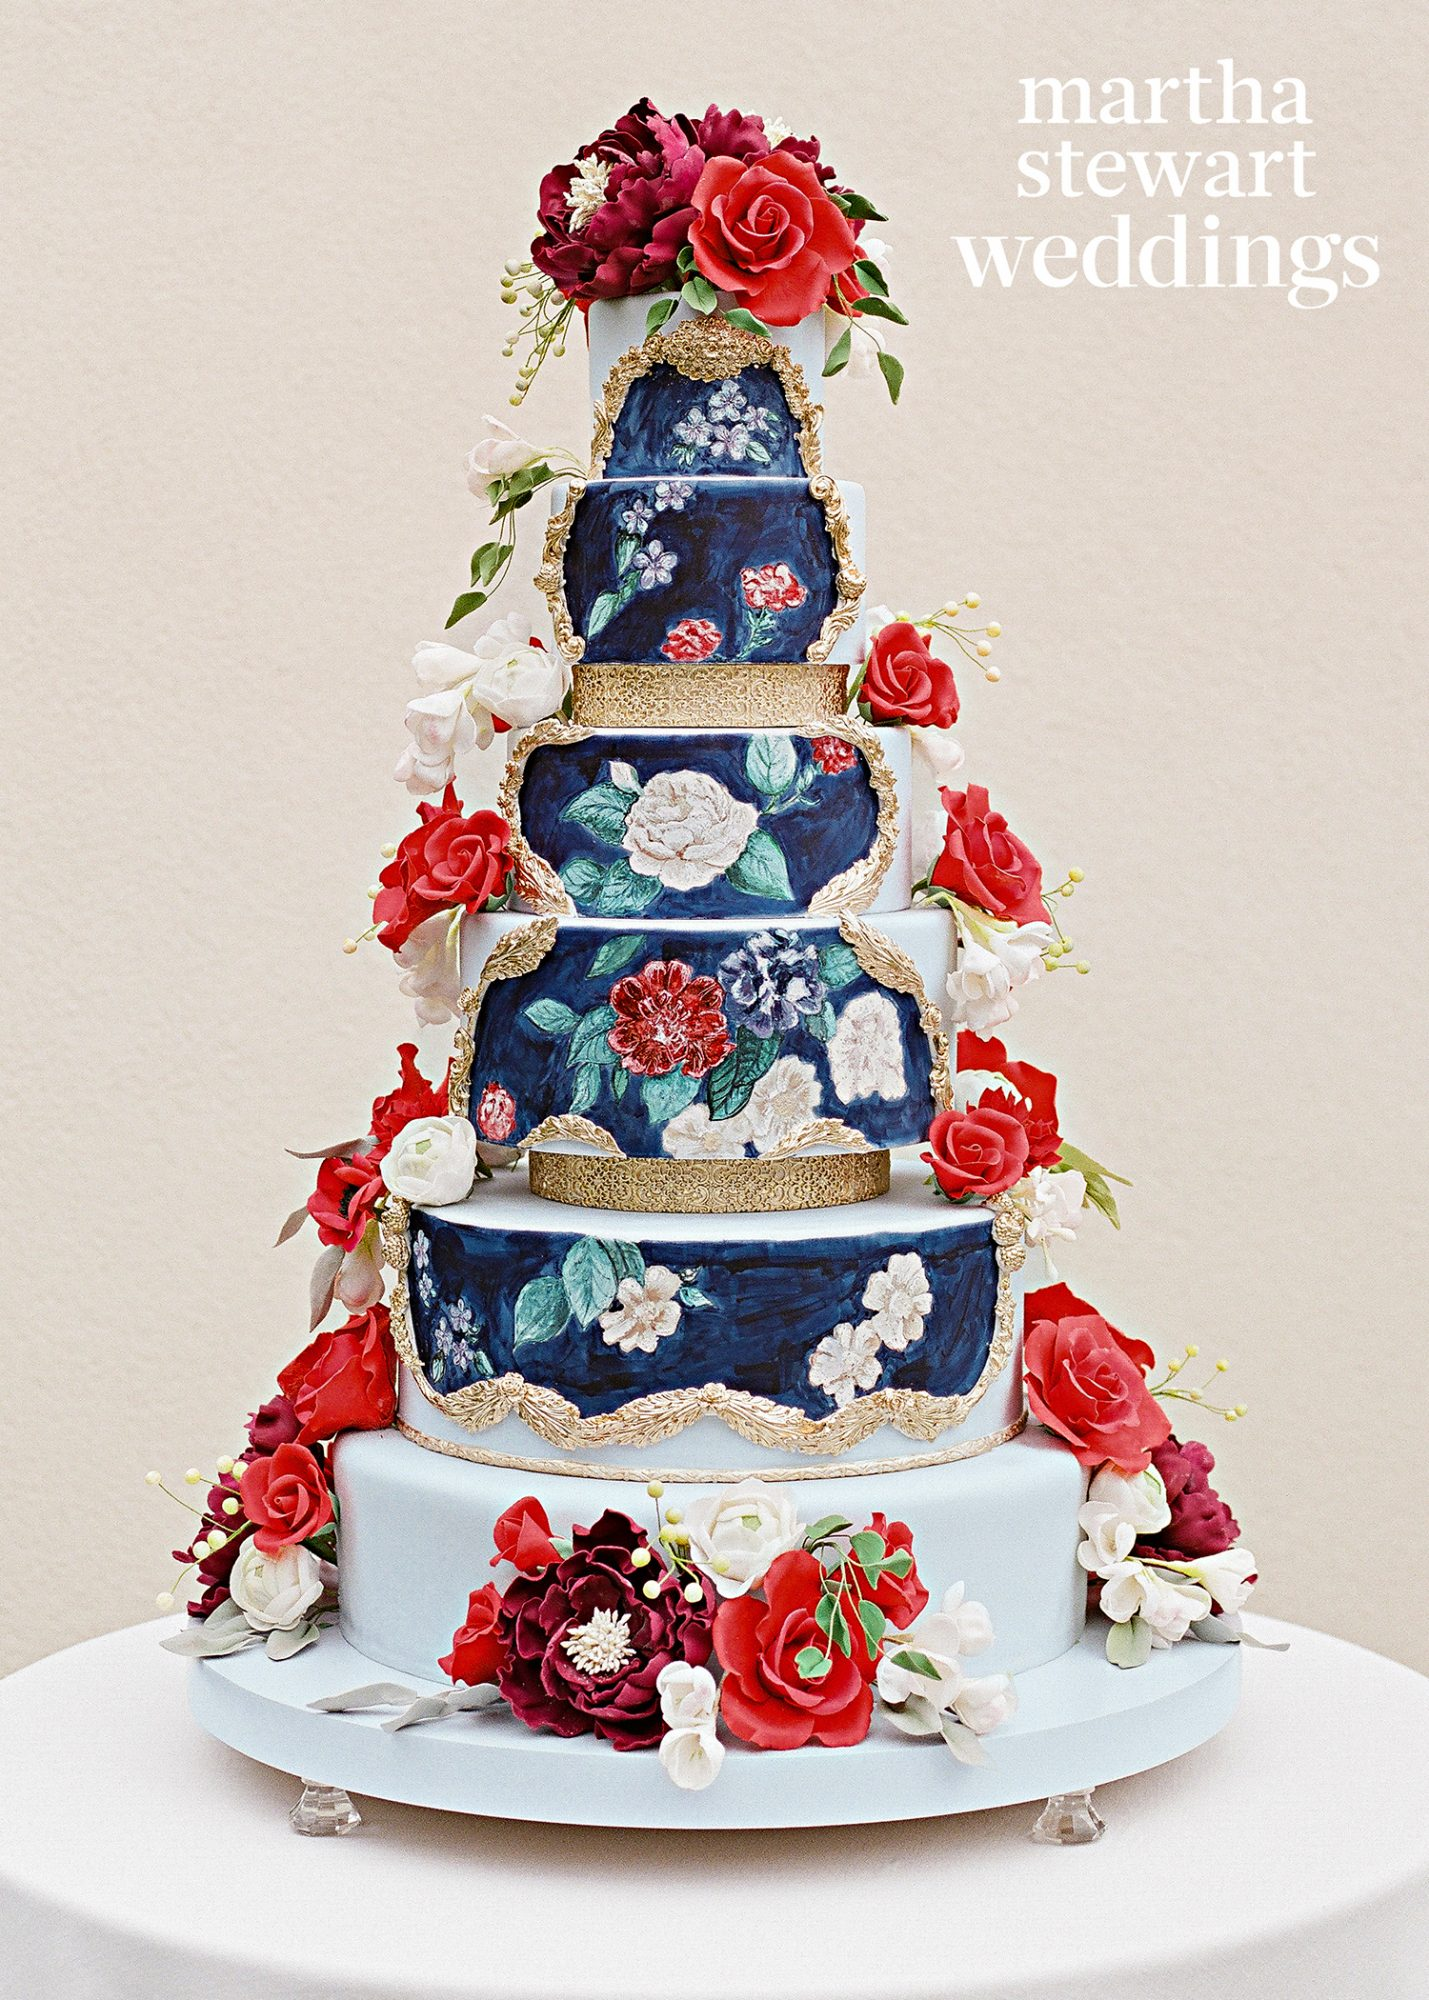 Not only did Ana Parzych hand-paint flowers onto actress Abby Elliott's dark chocolate and strawberry-vanilla wedding cake, but she also adorned it with gum-paste blooms, too. The details made for one truly ornate confection.